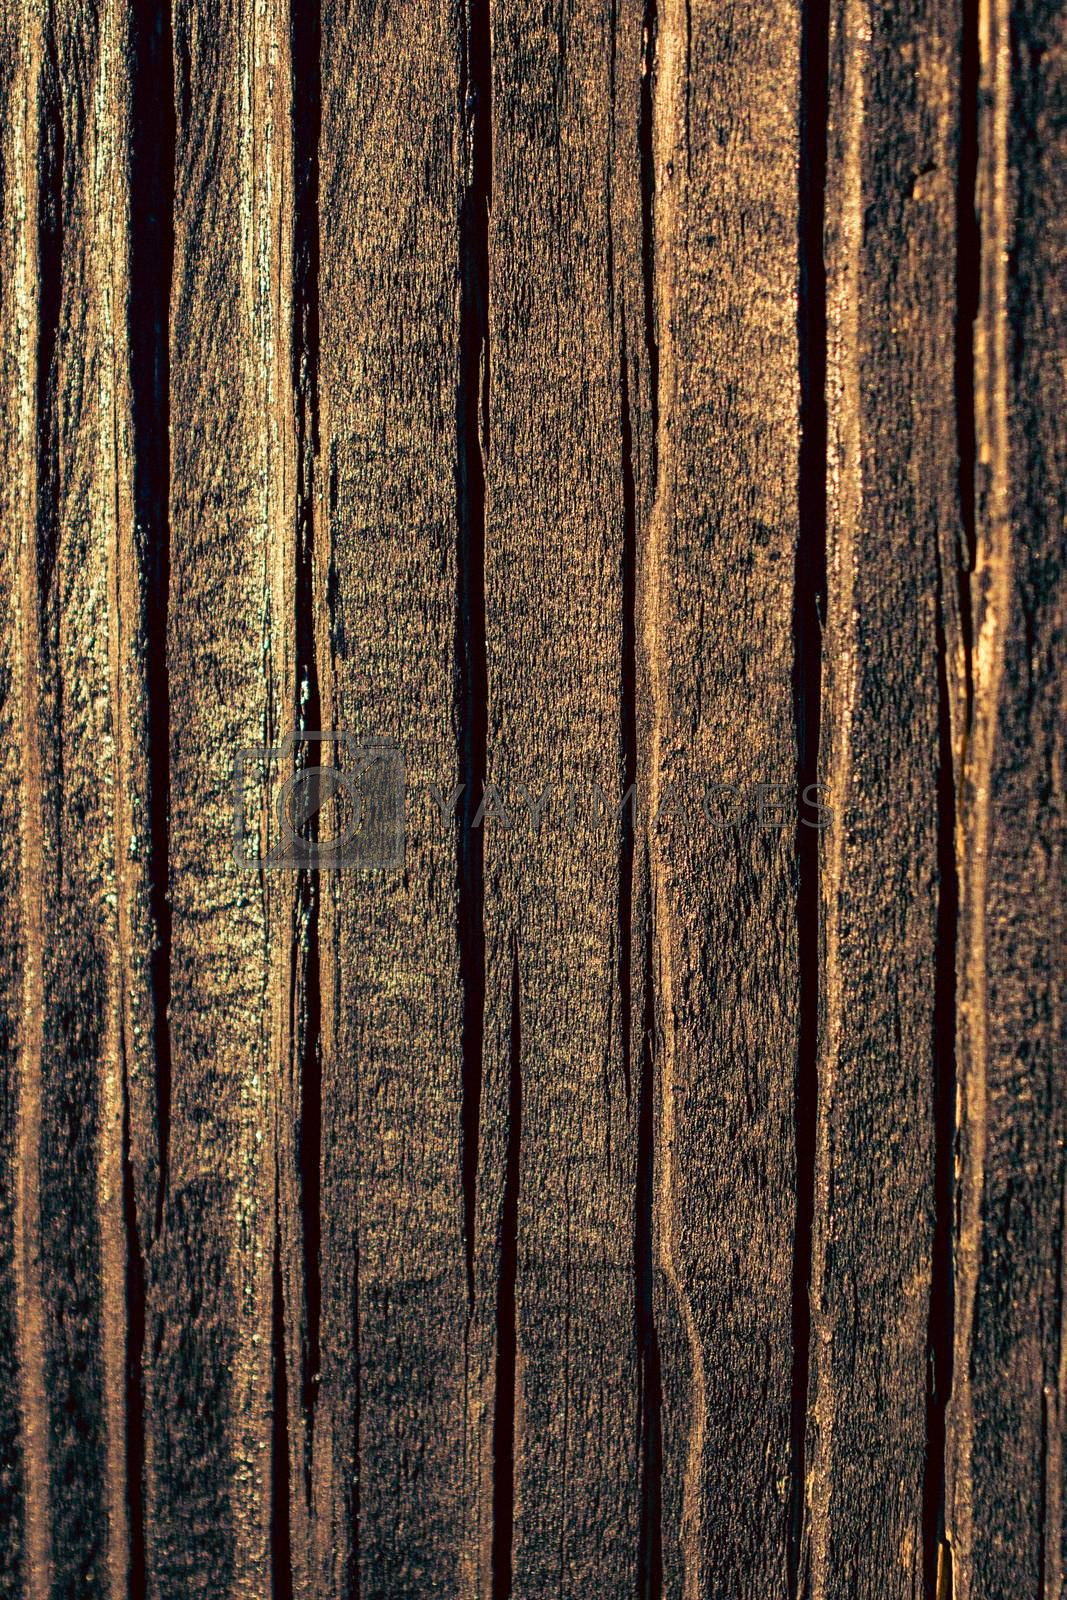 Wood texture with natural patterns as a background